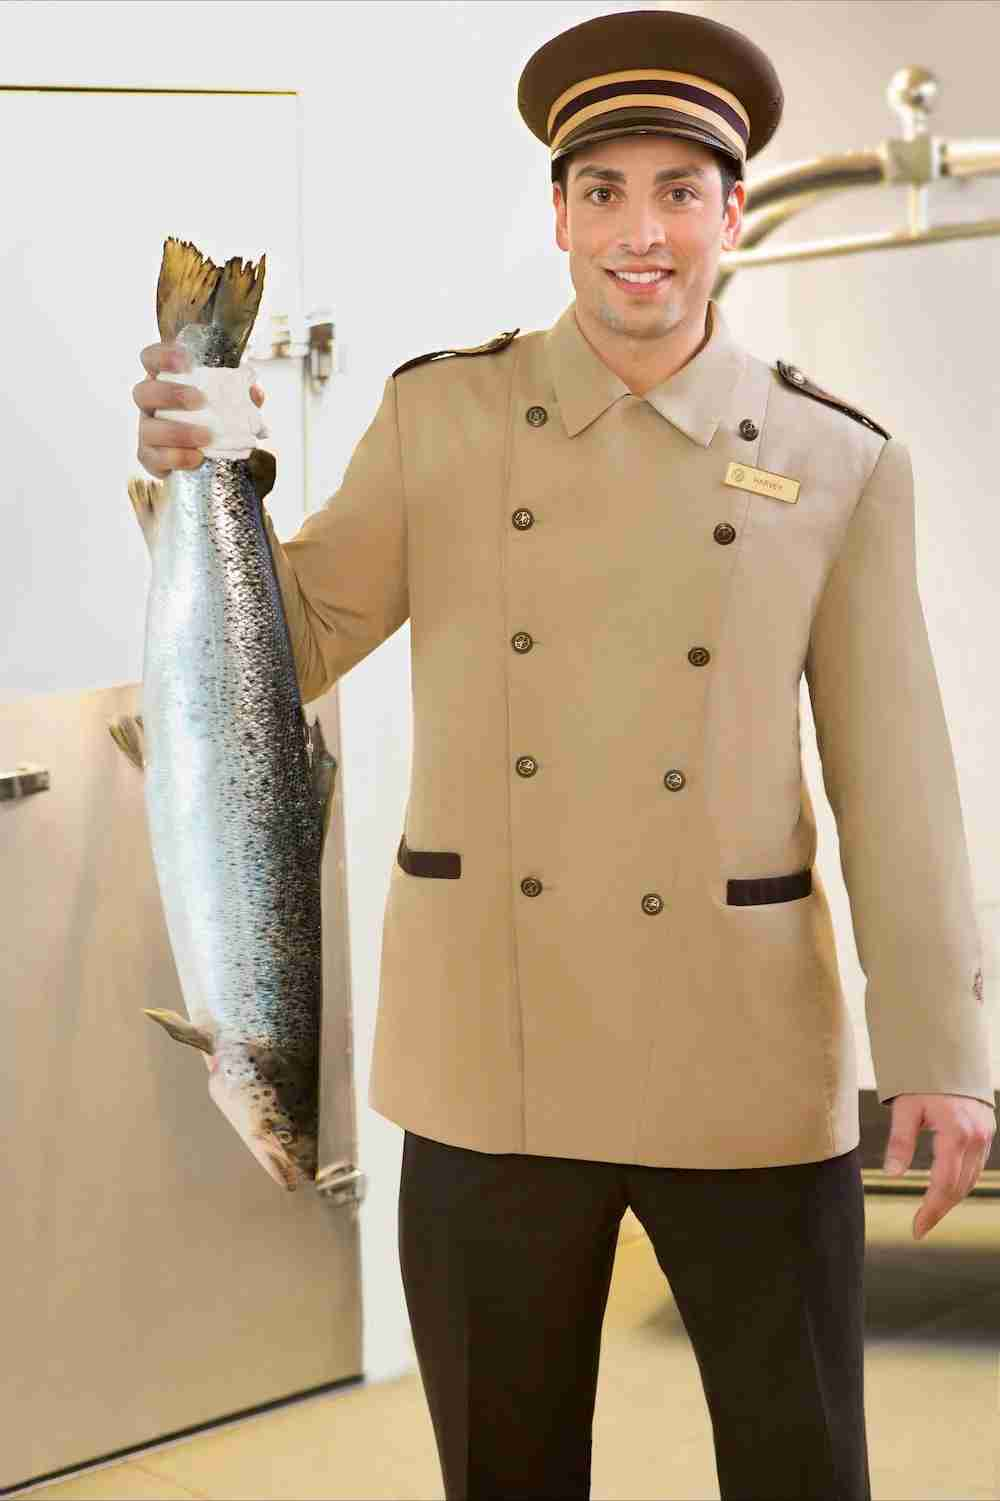 What a catch! Need to fly a fish home with you? Harvey Makasa can help. Image courtesy of Fairmont Vancouver Airport.